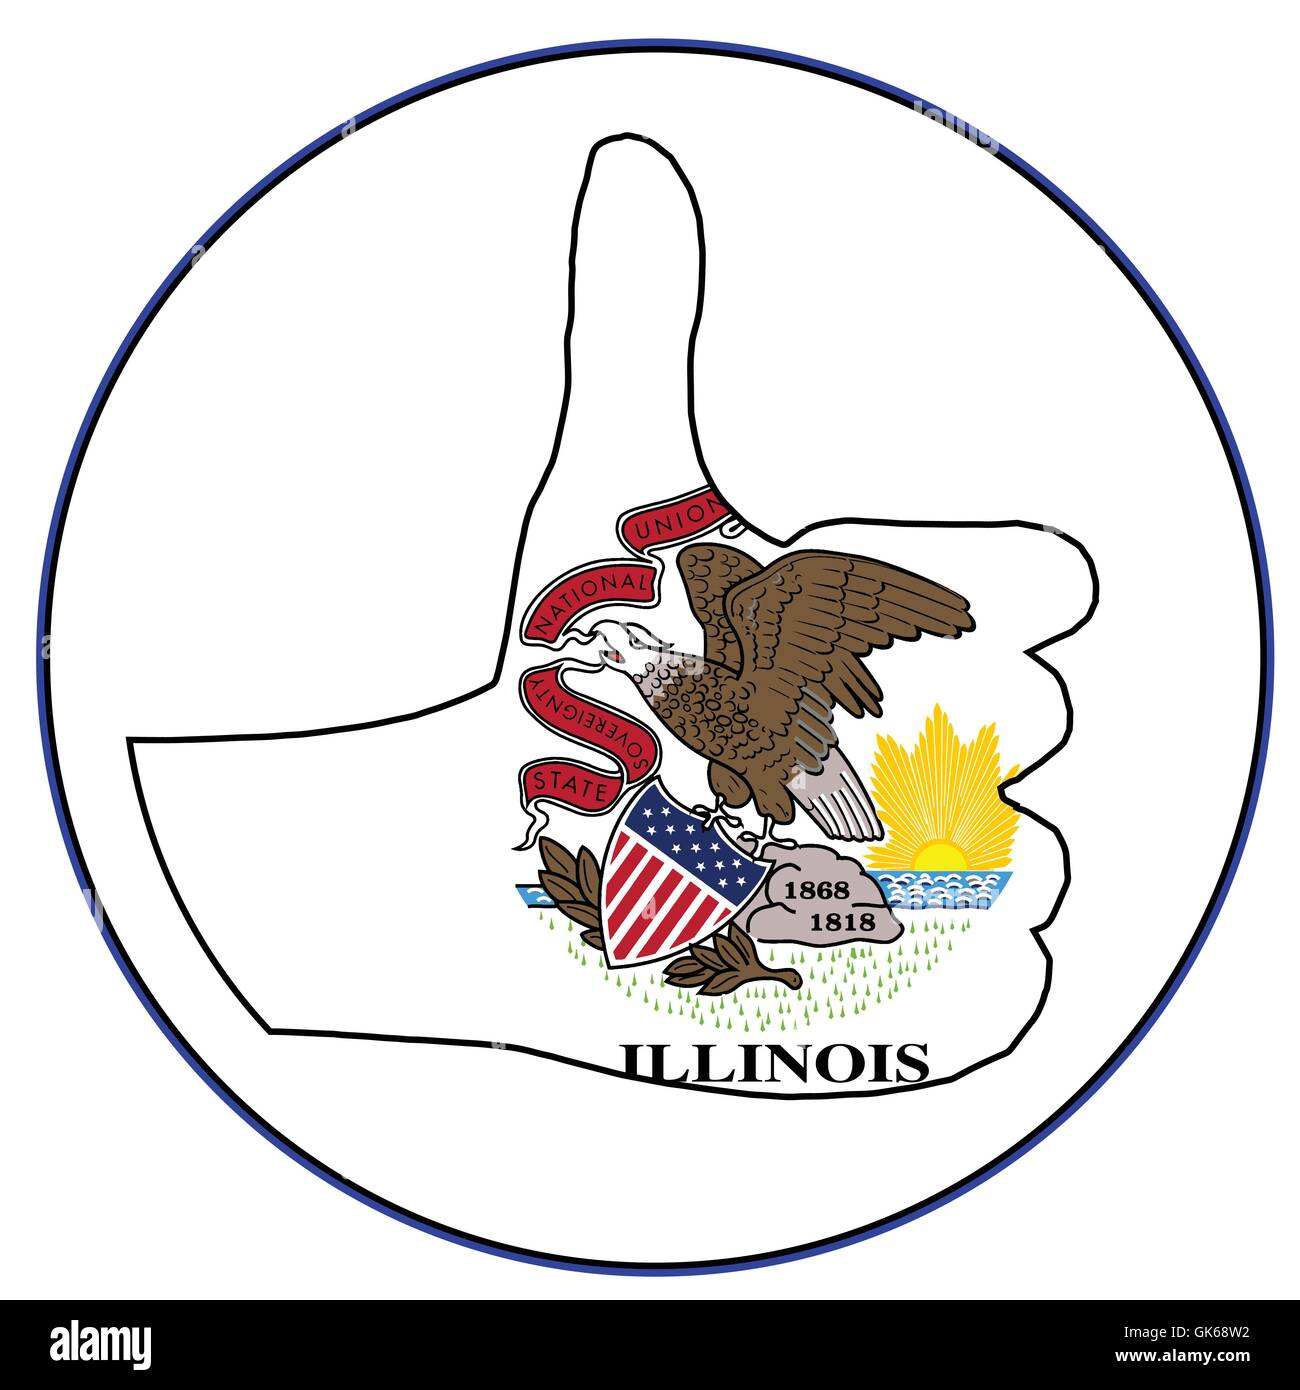 Illinois Flag hand giving the thumbs up sign all over a white background - Stock Vector